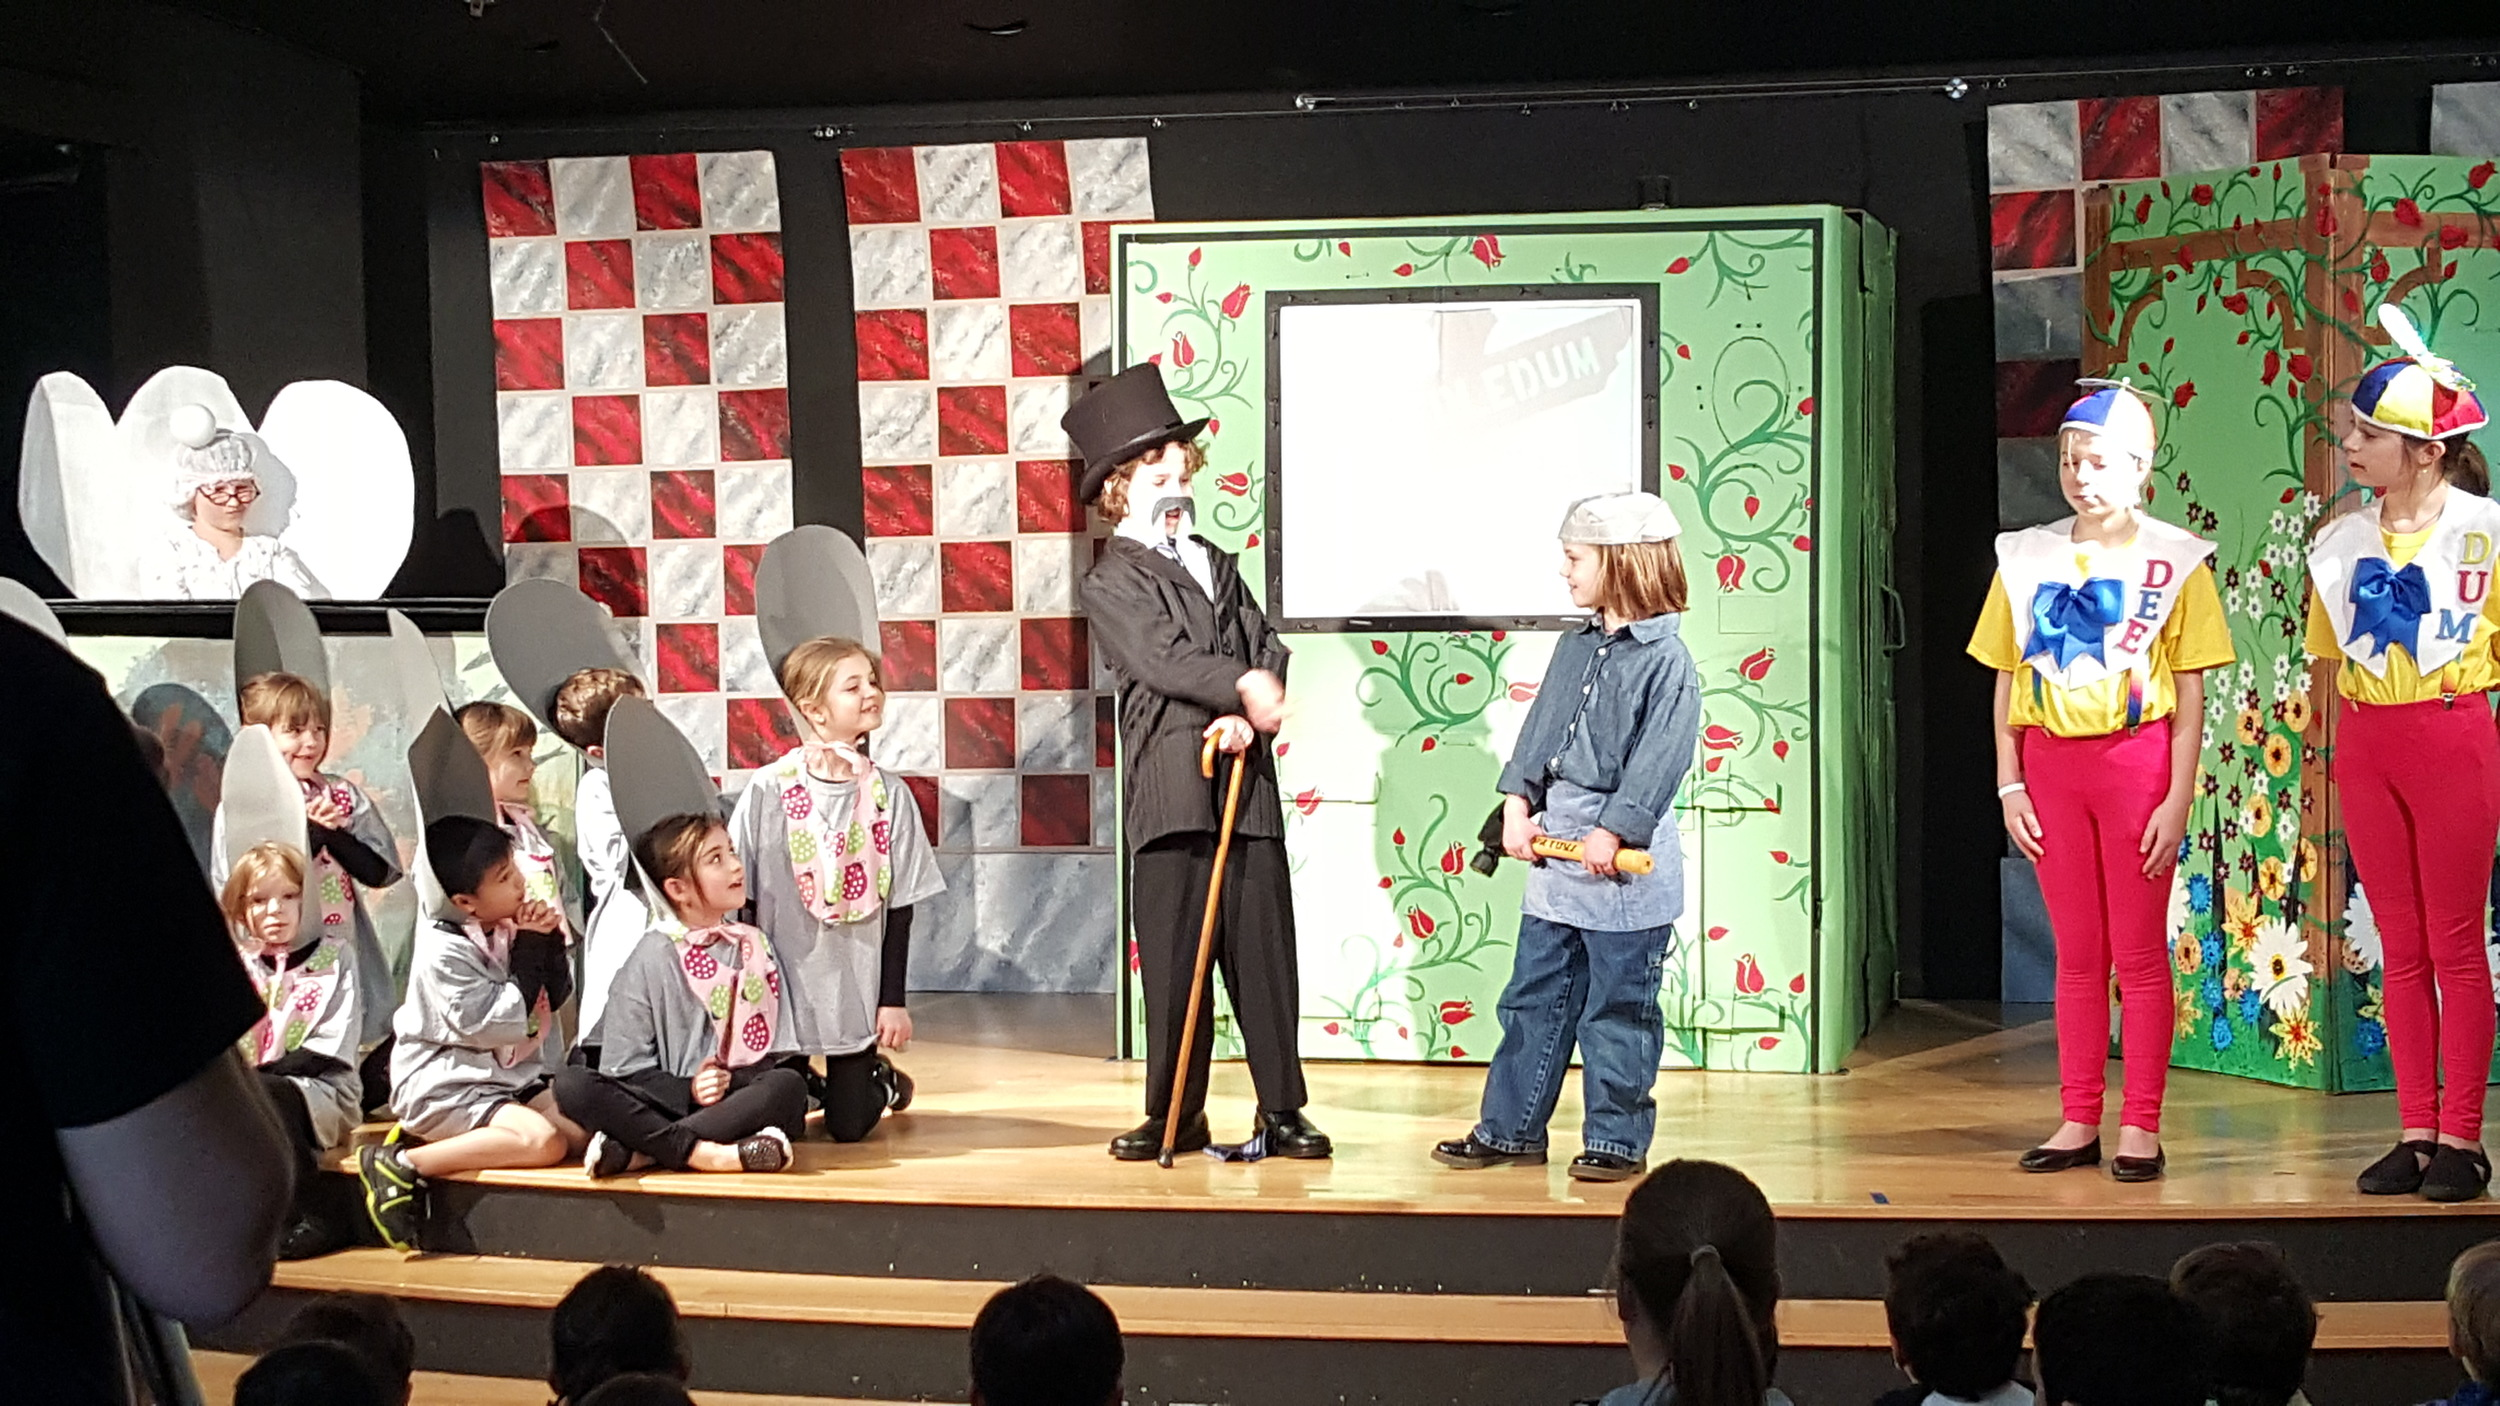 Students learn to communicate with humor, drama, body movements, and timing.